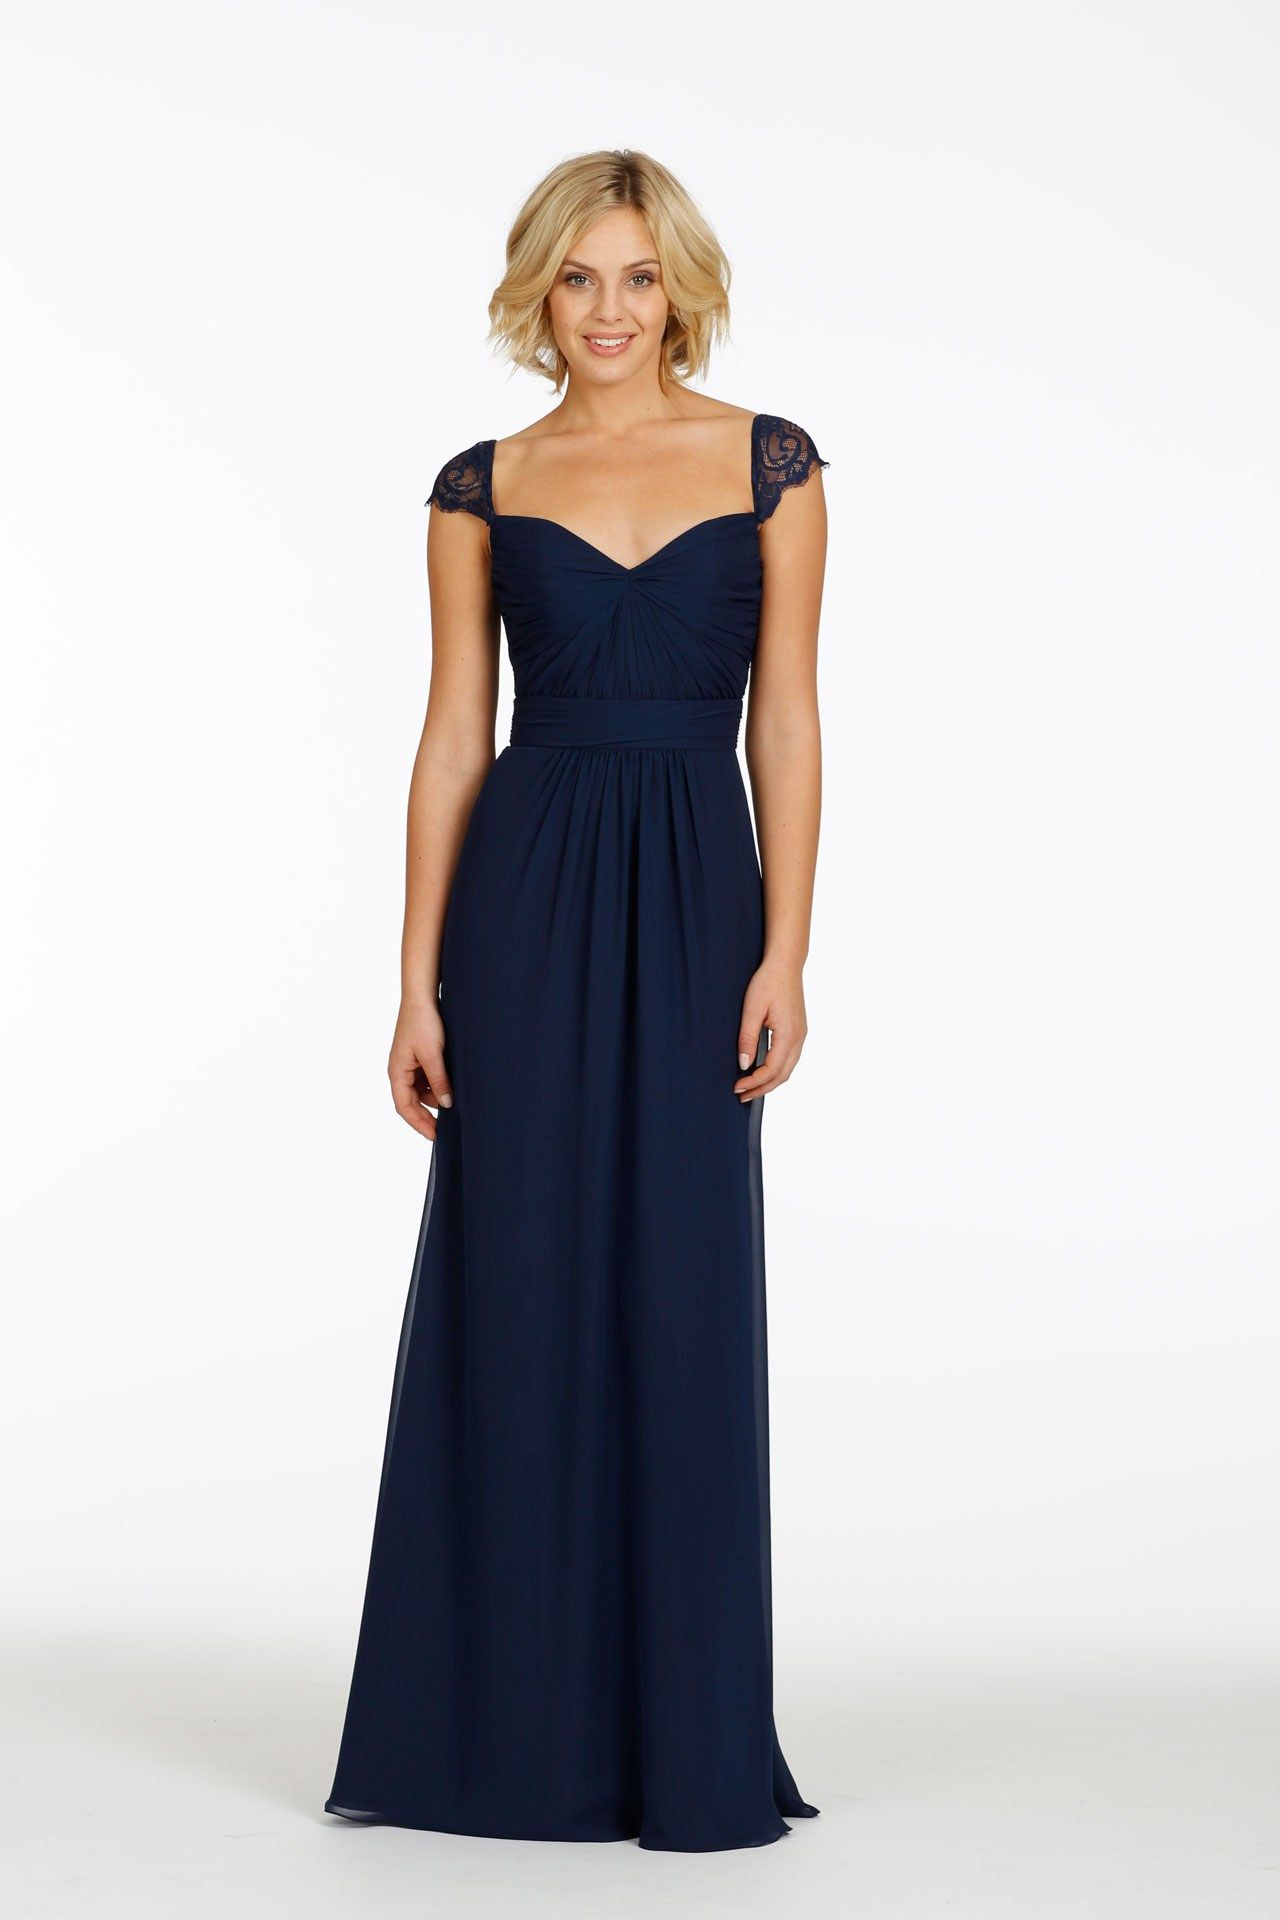 Bridesmaid dresses latest styles u ideas bridesmagazine